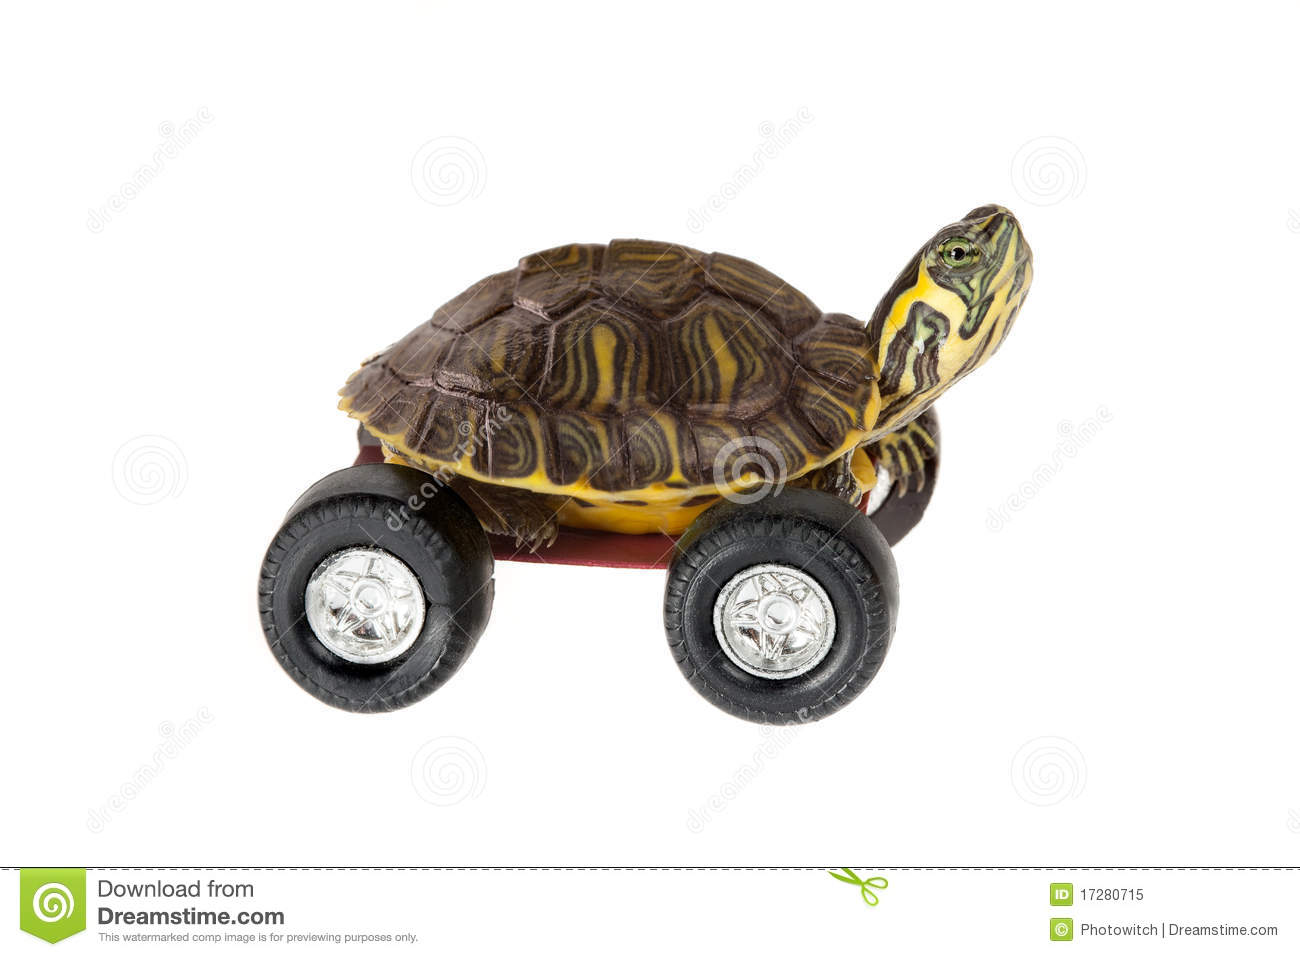 Turtle On Wheels Royalty Free Stock Photo - Image: 17280715